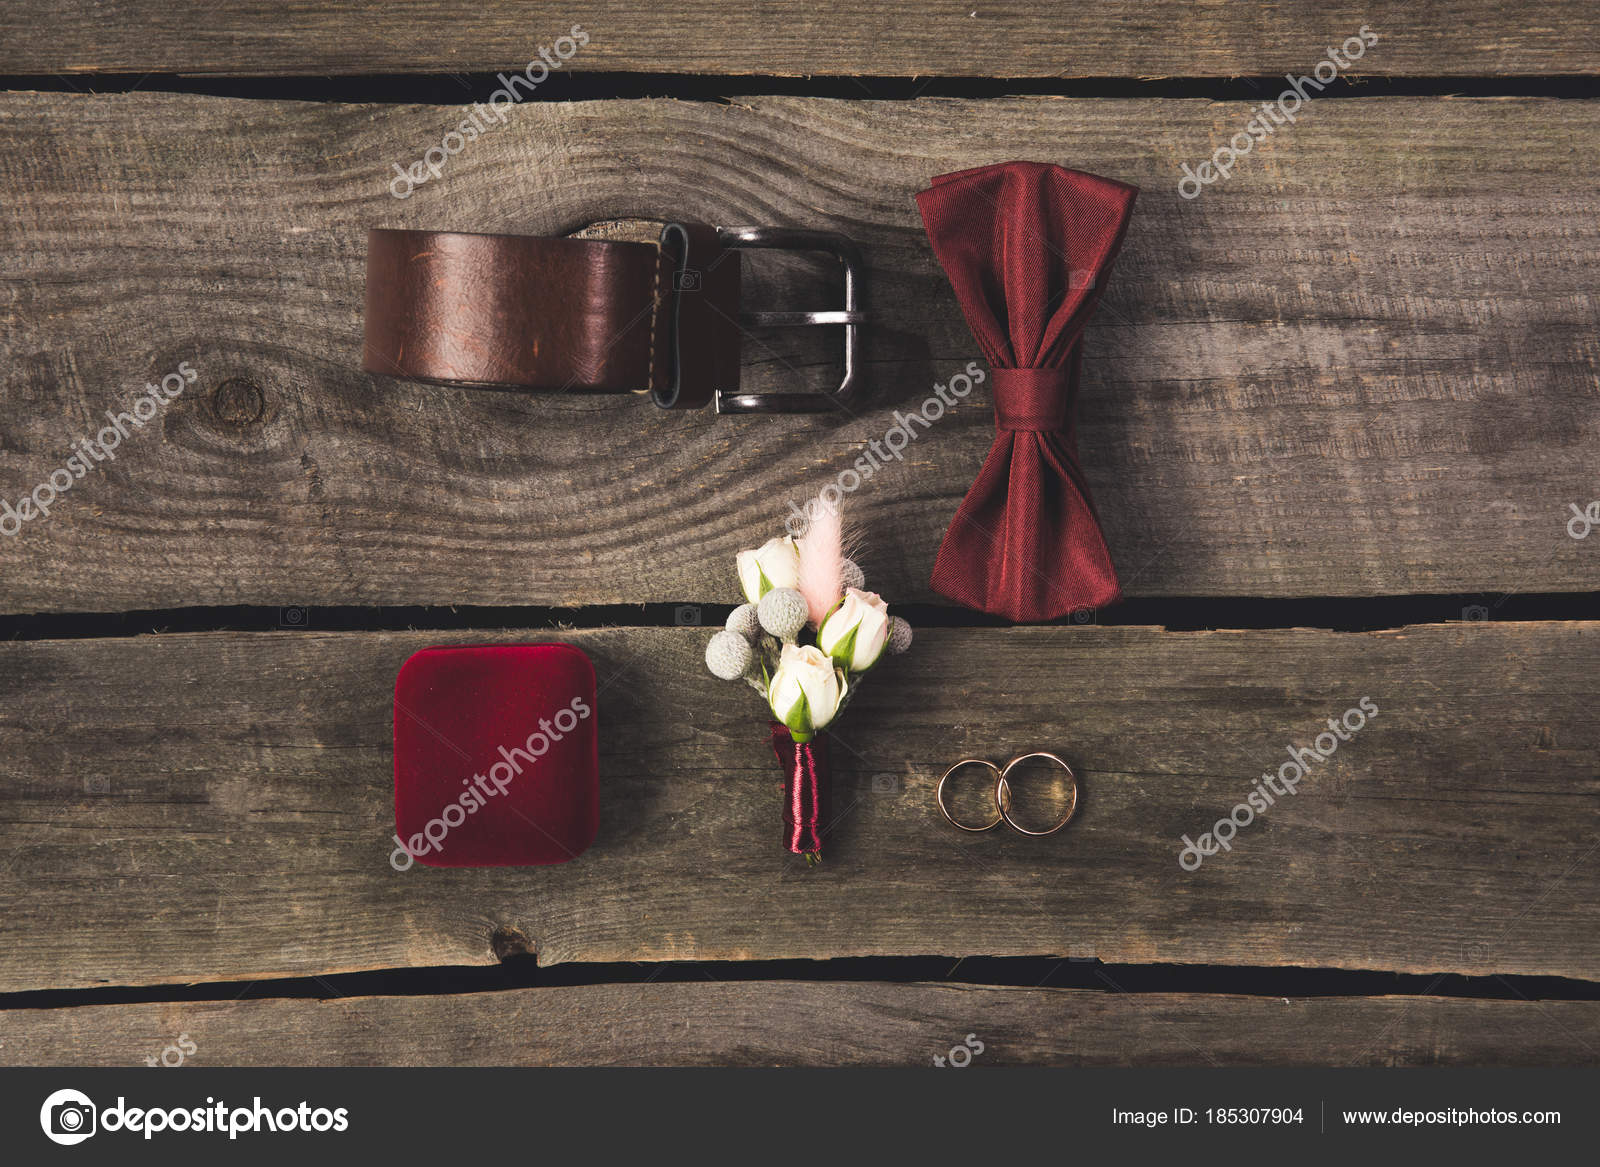 Flat lay arranged grooms accessories wedding rings wooden tabletop flat lay arranged grooms accessories wedding rings wooden tabletop stock photo junglespirit Images